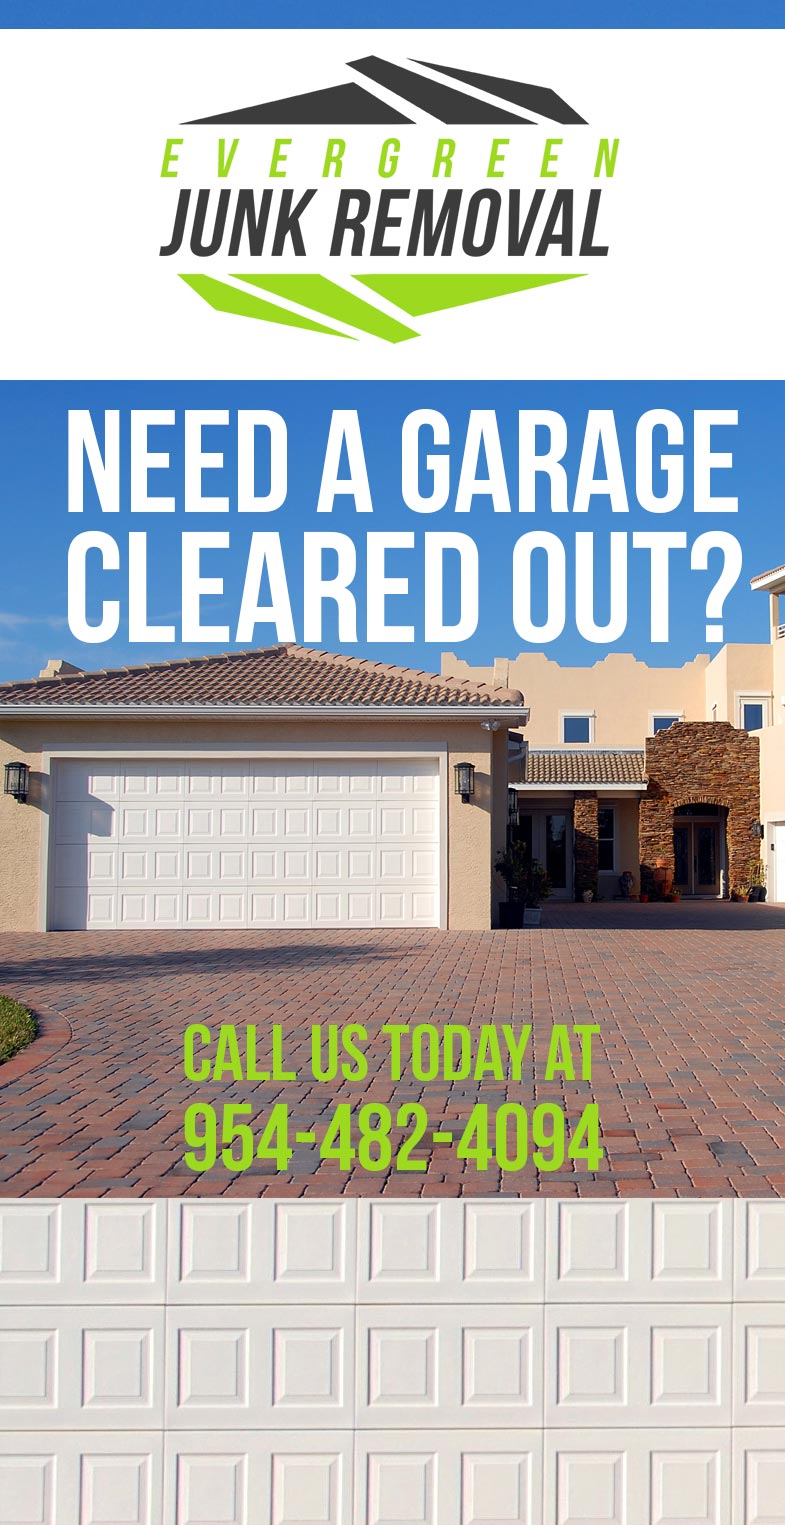 Garage Clean Out Services Provider